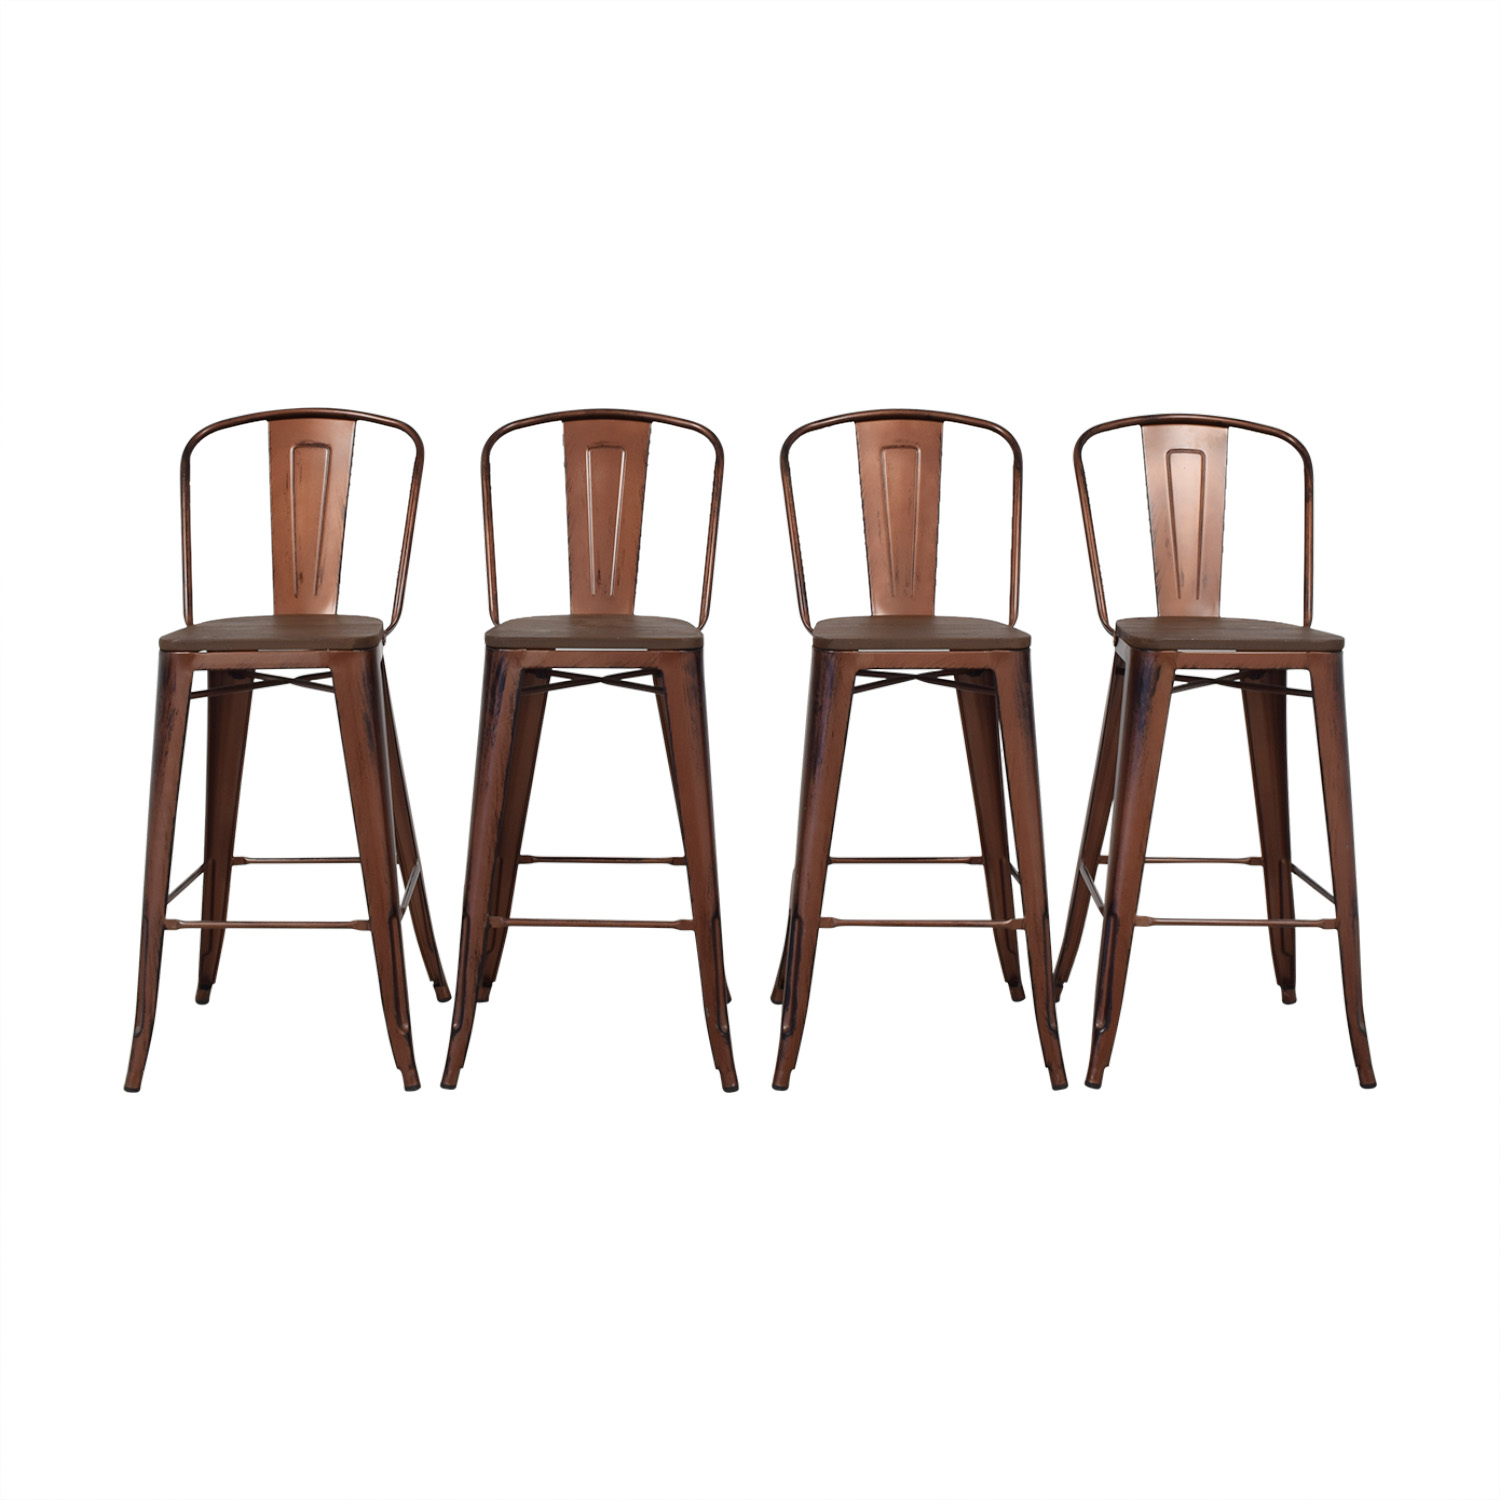 Overstock Overstock Tabouret Wood Seat Brushed Copper Bistro Bar Stools nyc